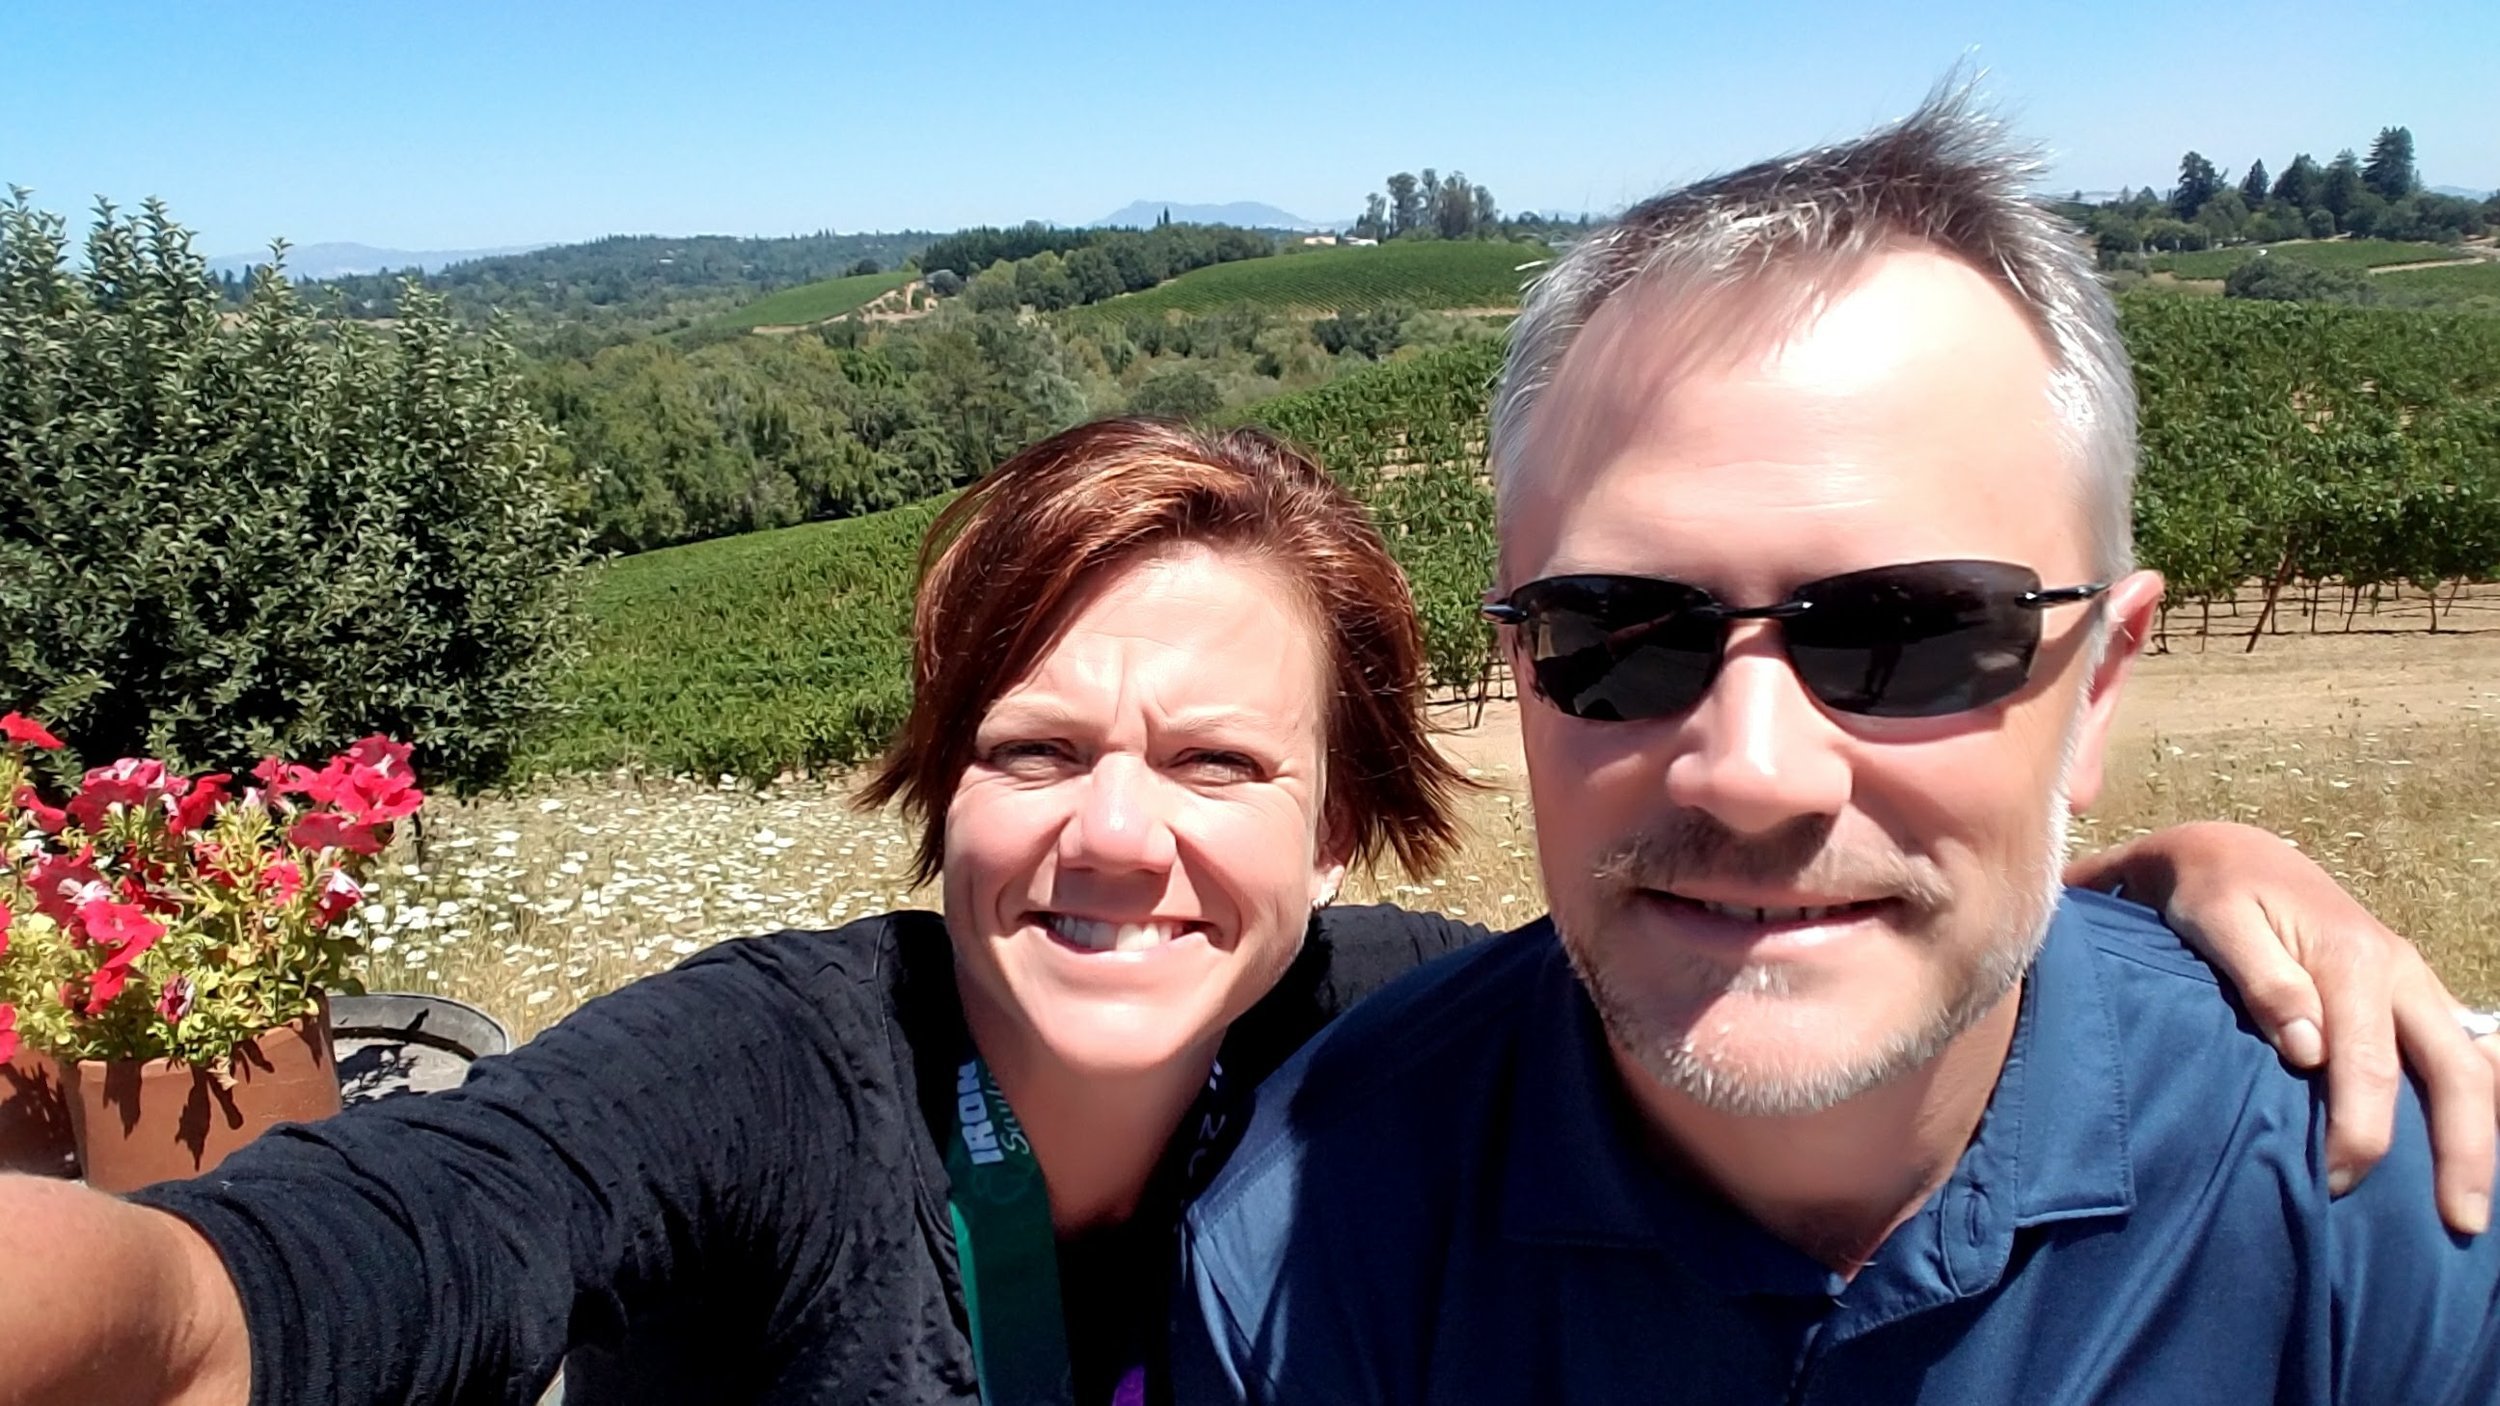 Me and Honey at the Iron Horse Vineyard.